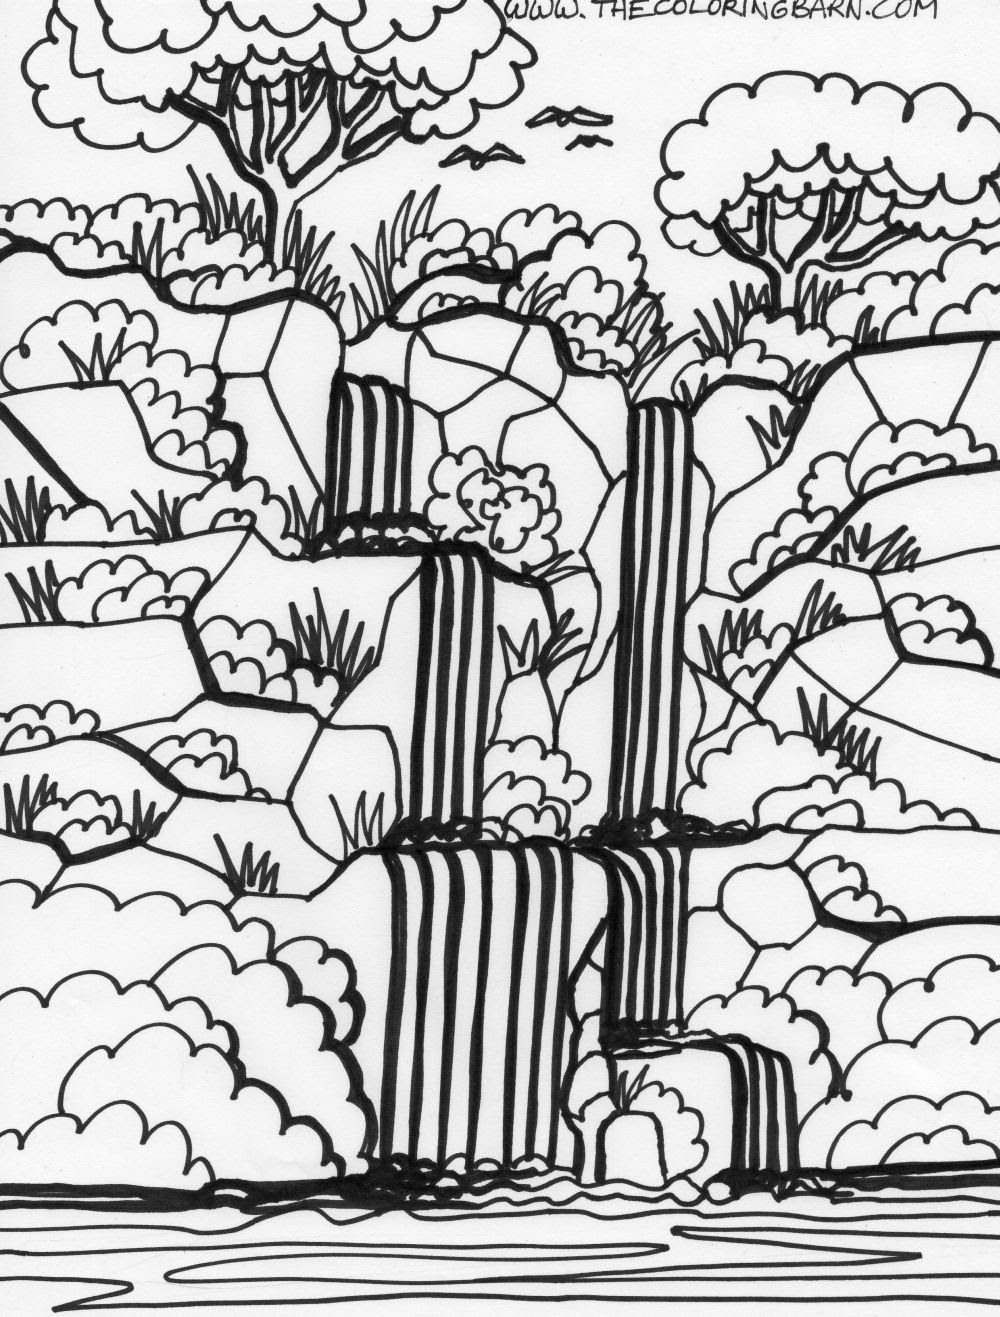 Tropical Rainforests Coloring Pages - Coloring Home